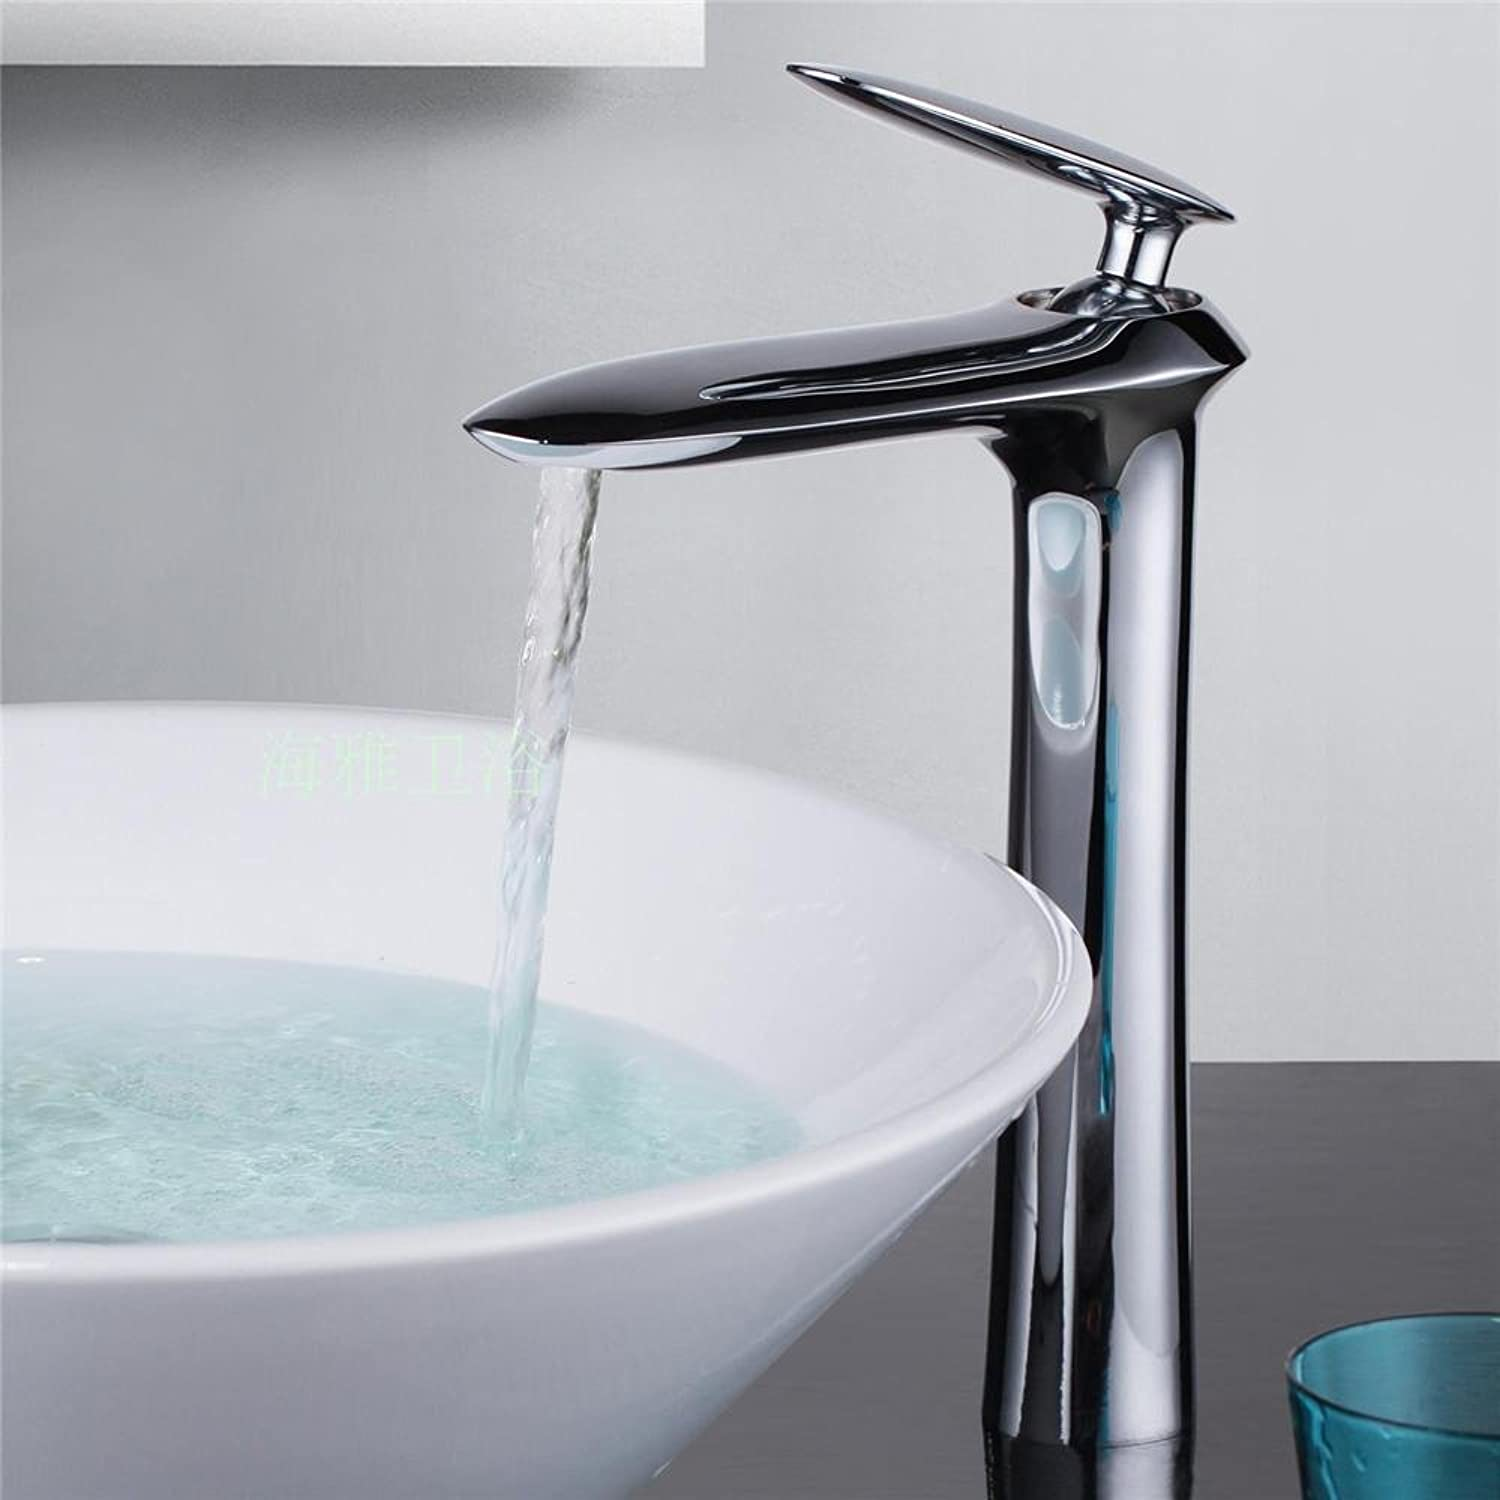 Bathroom Faucet Mixer Tap Single Lever Faucet Bathroom Lavatory Tall Vessel Sink Basin Mixer